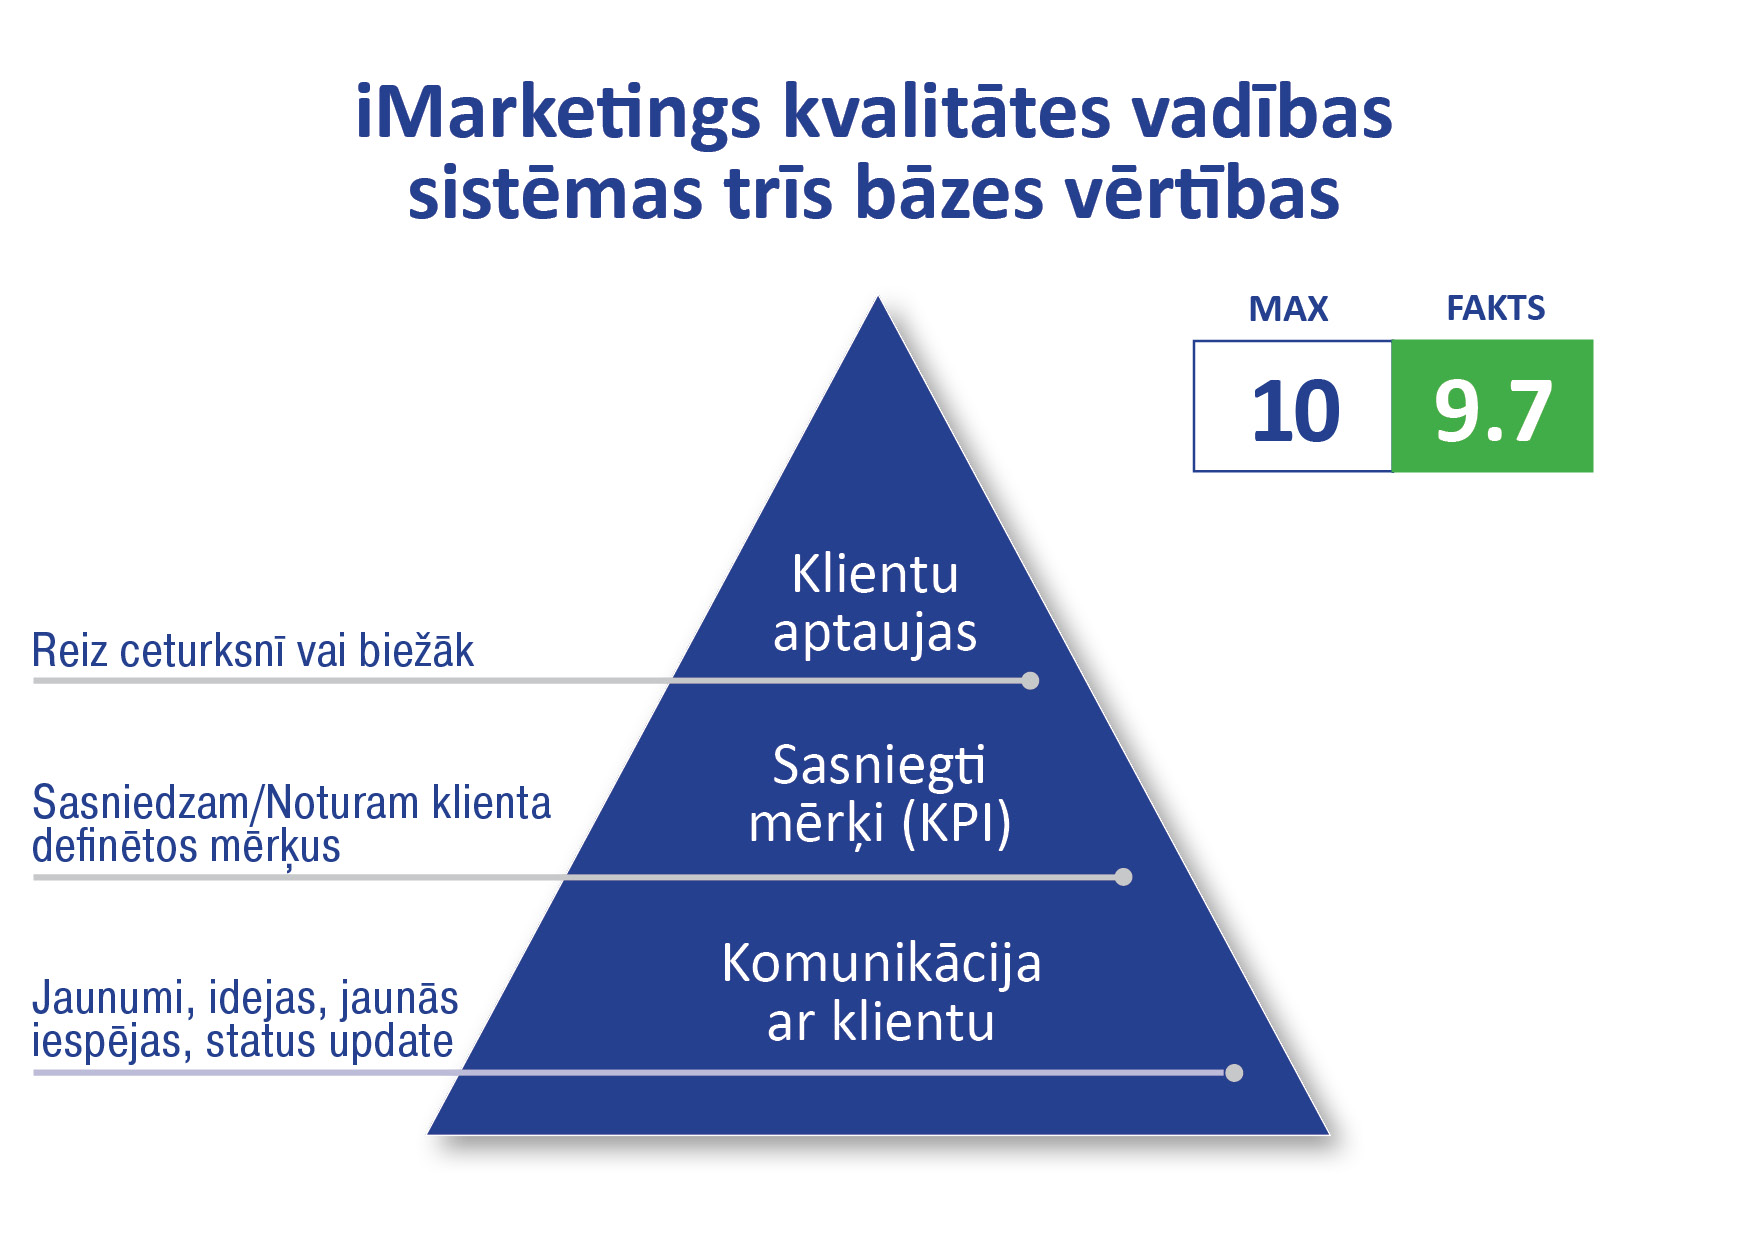 Total Quality Score (TQS), iMarketings